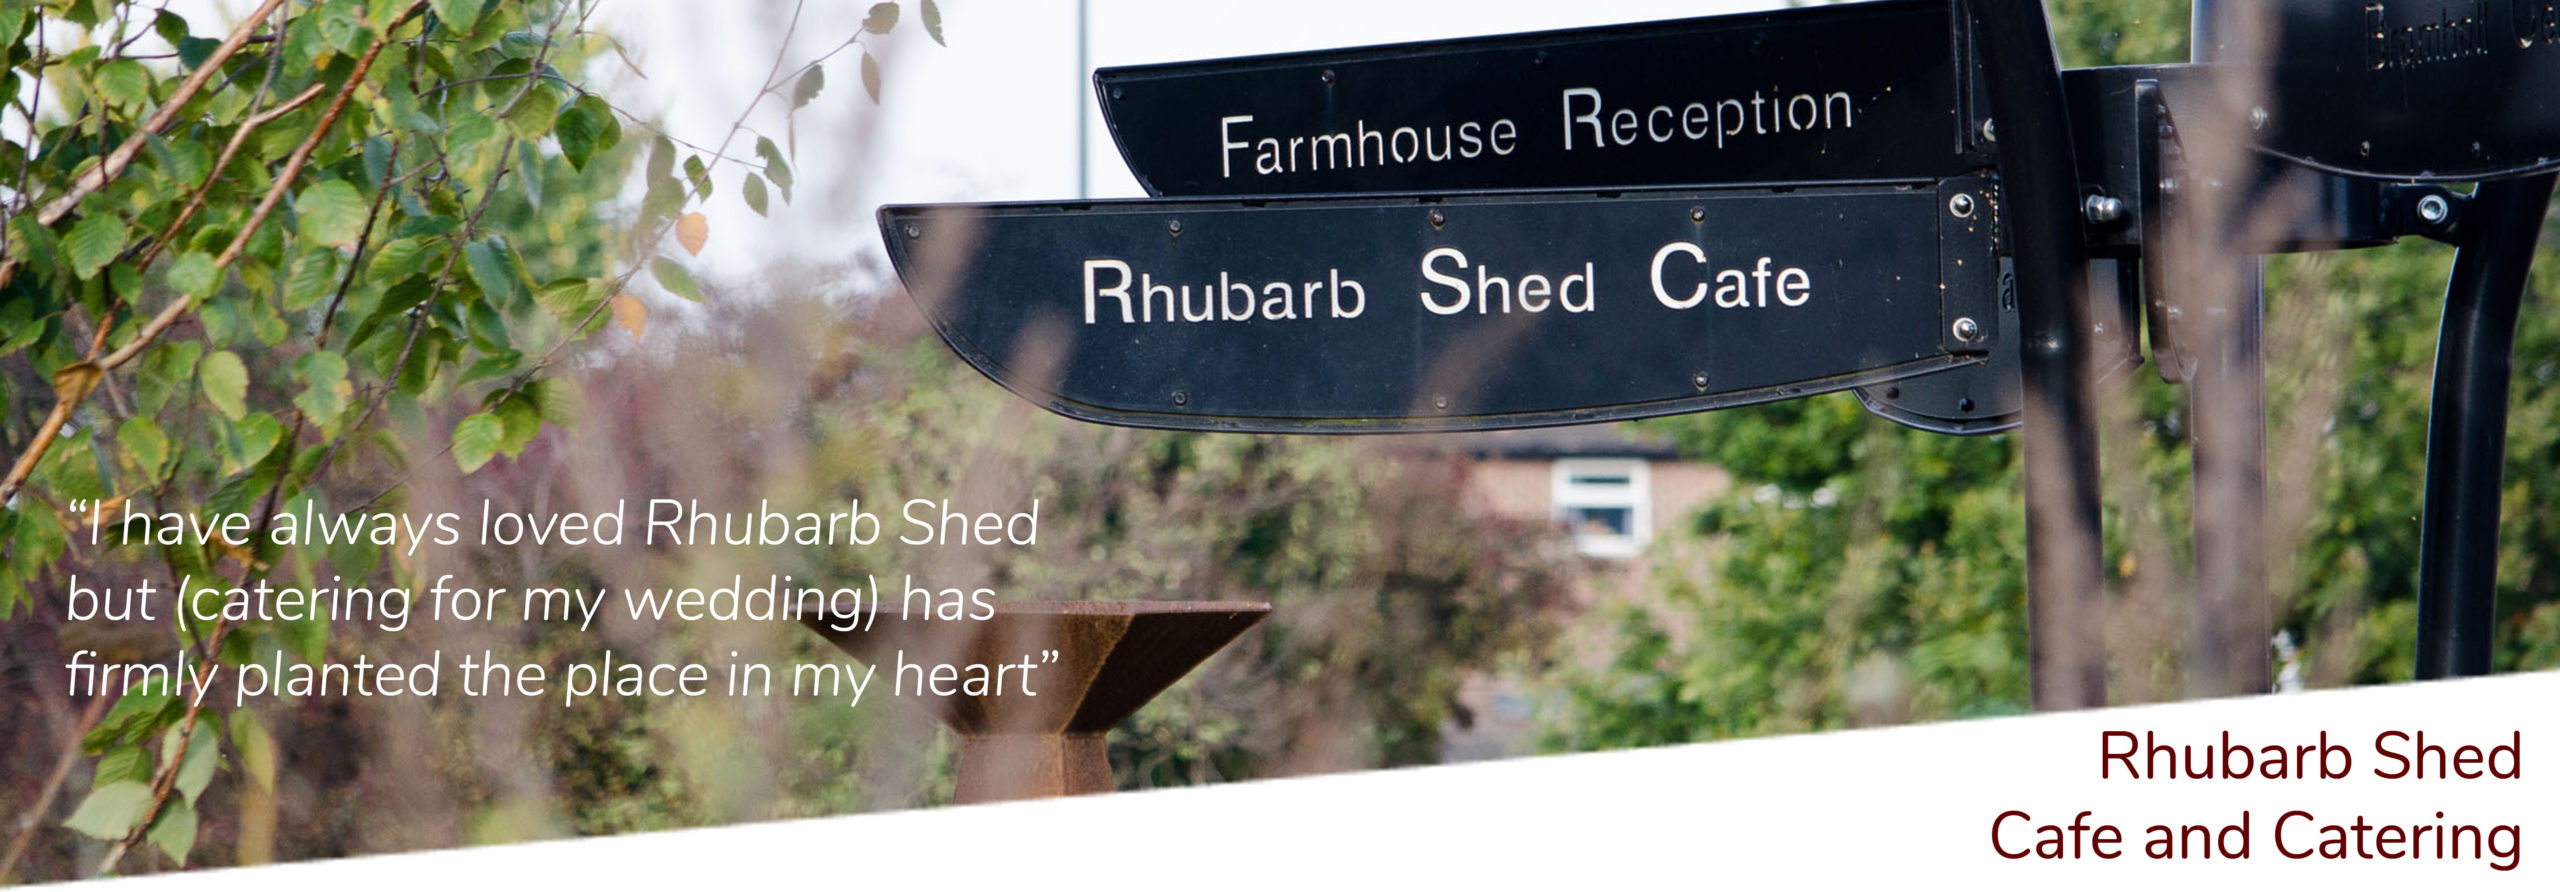 Rhubarb Shed Cafe and Catering